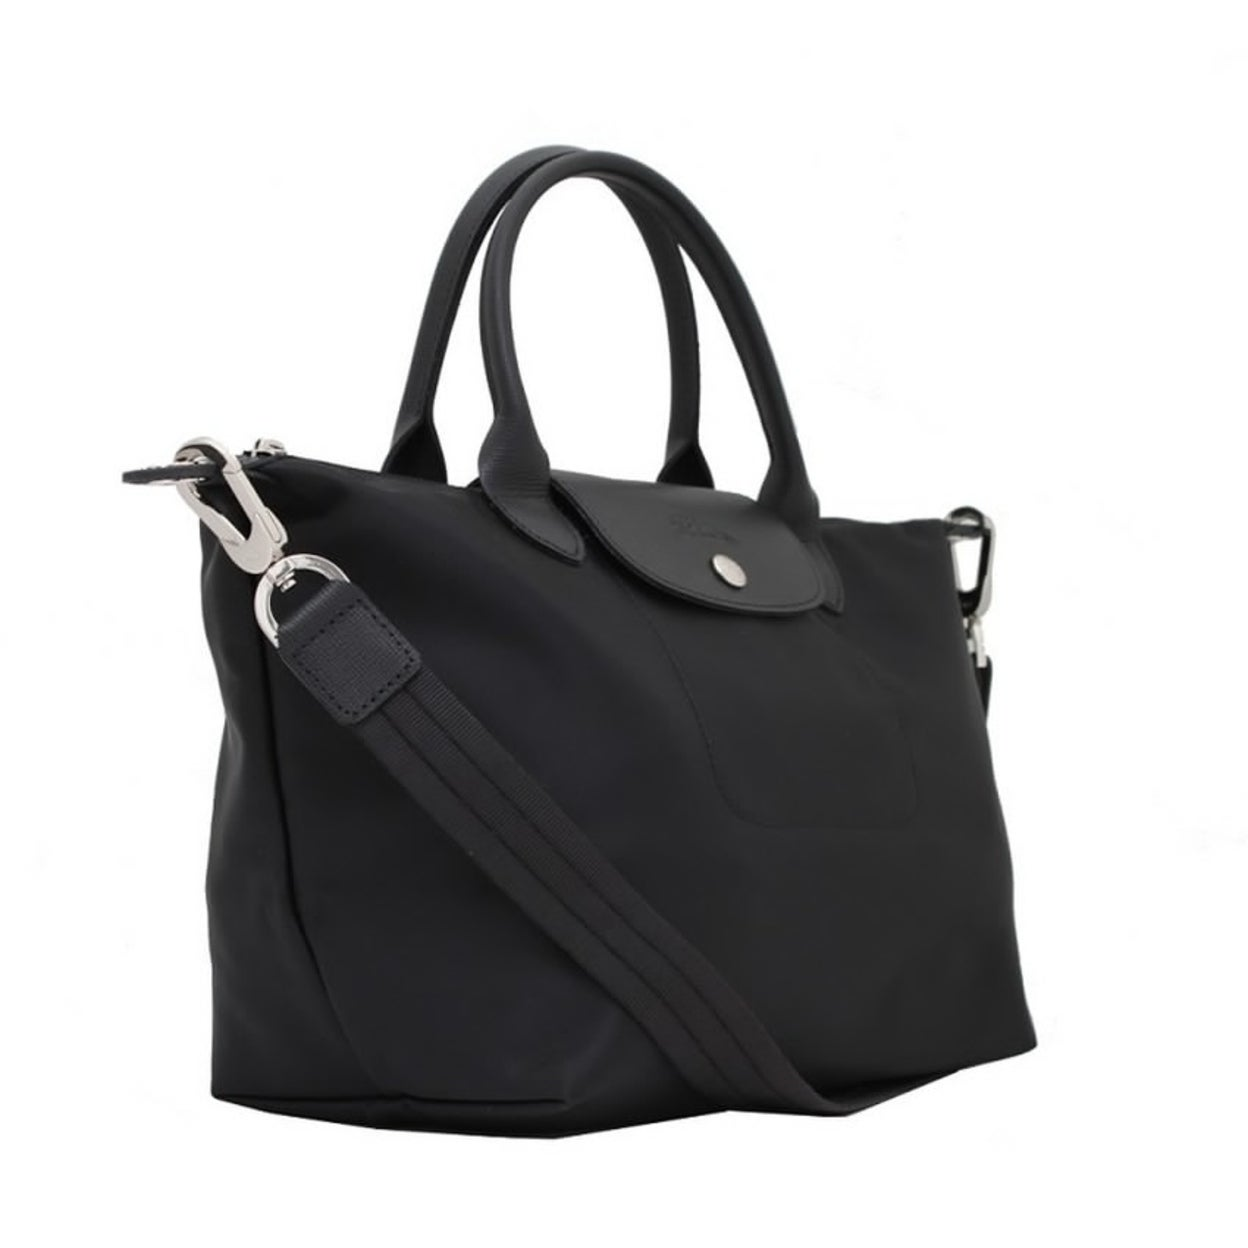 305d44b4c4d8 Shop Authentic LongChamp Le Pliage Neo Small Tote - Free Shipping Today -  Overstock - 23488815